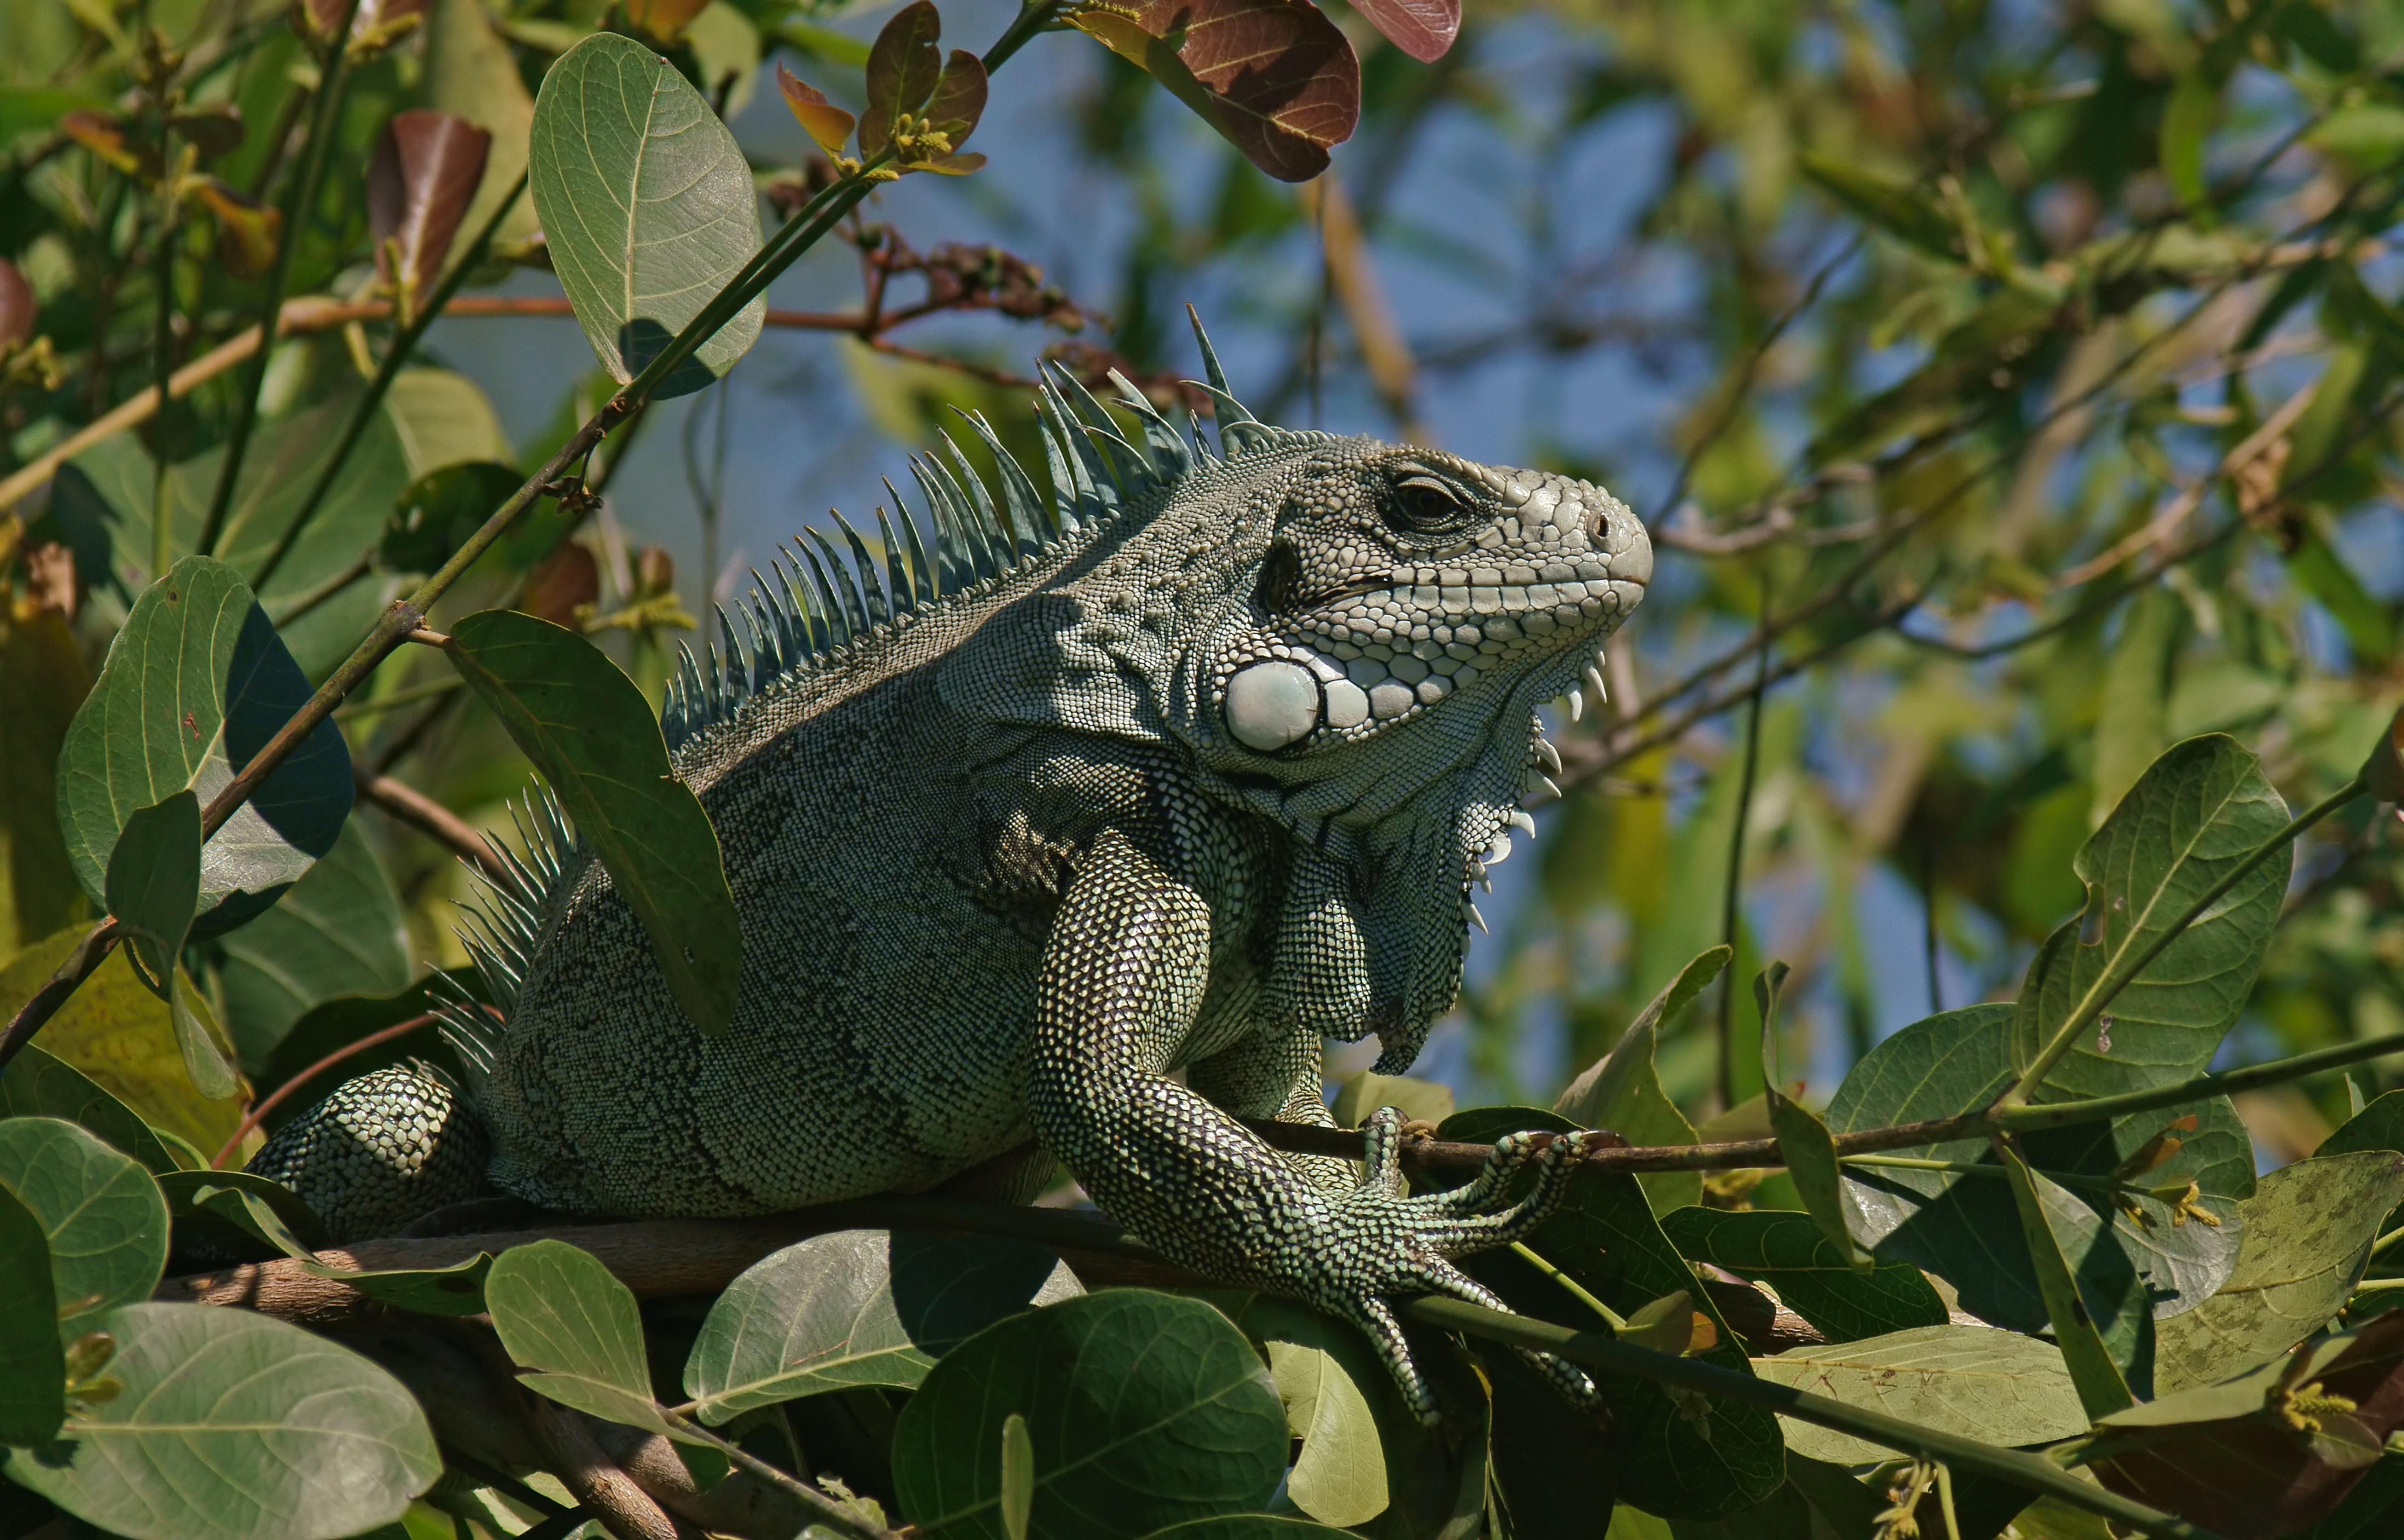 Green iguana (Iguana iguana) in the tree, Pantanal, Brazil